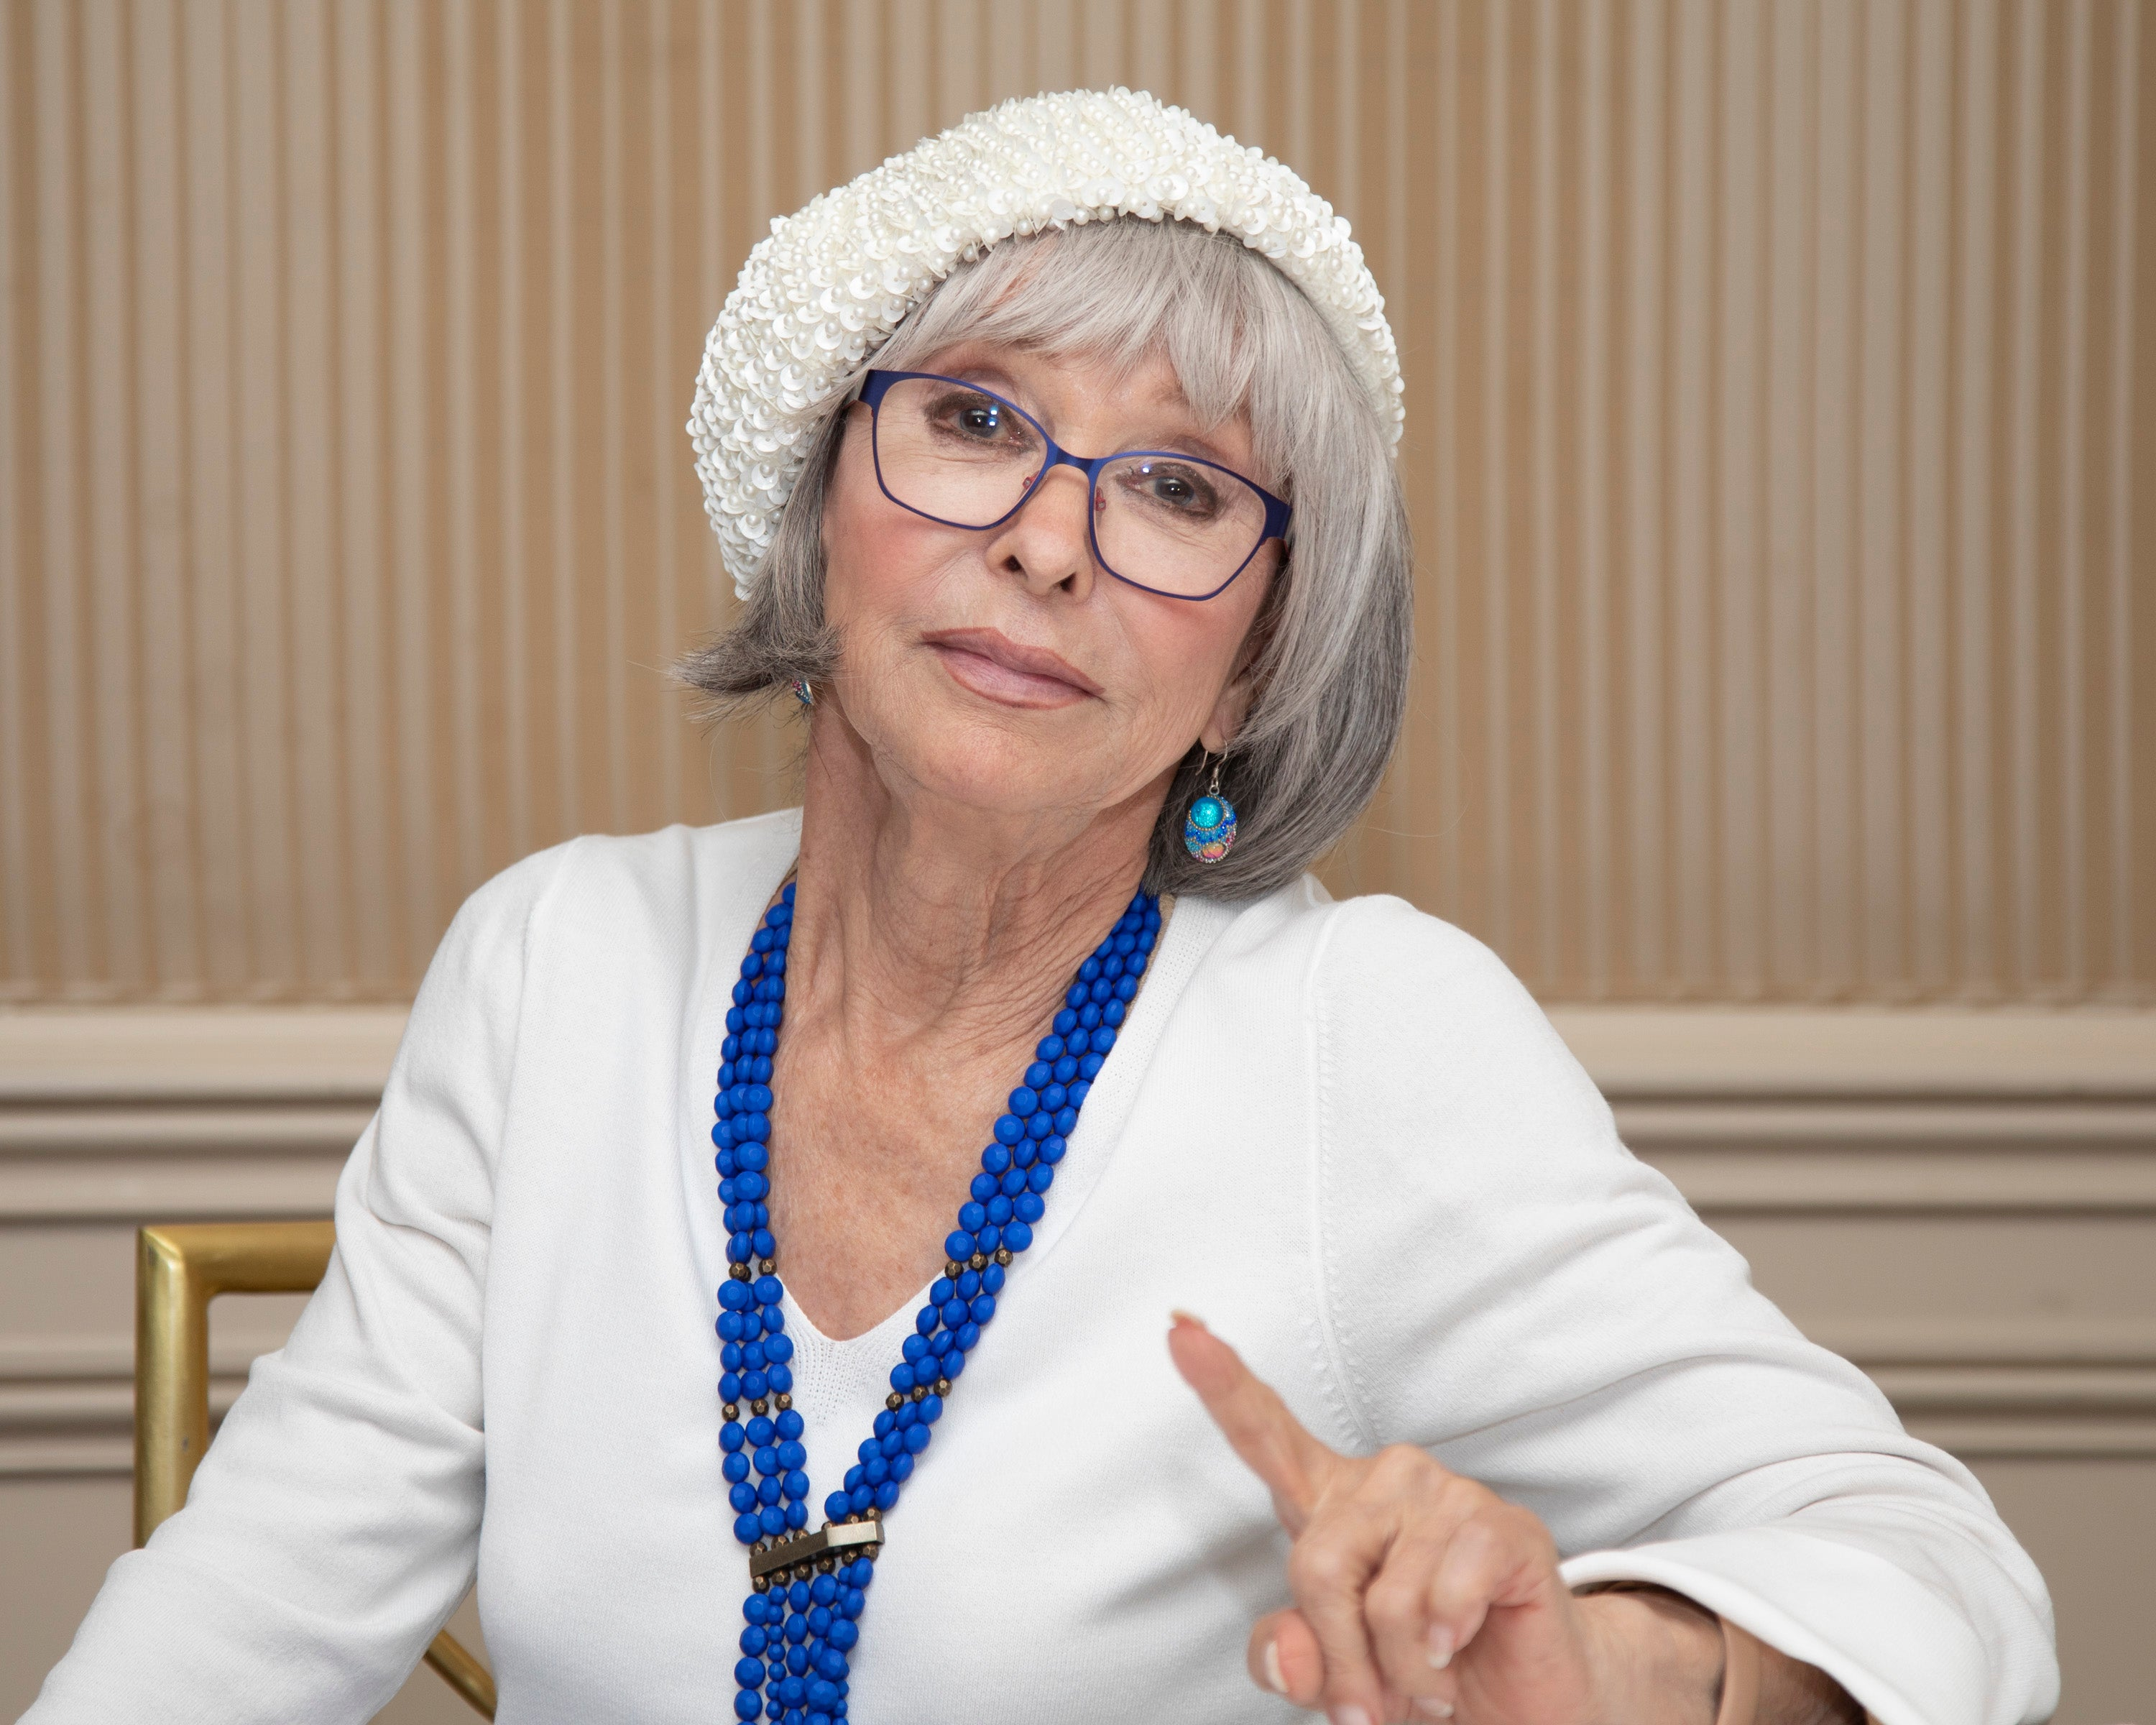 Rita Moreno, Golden Globe winner